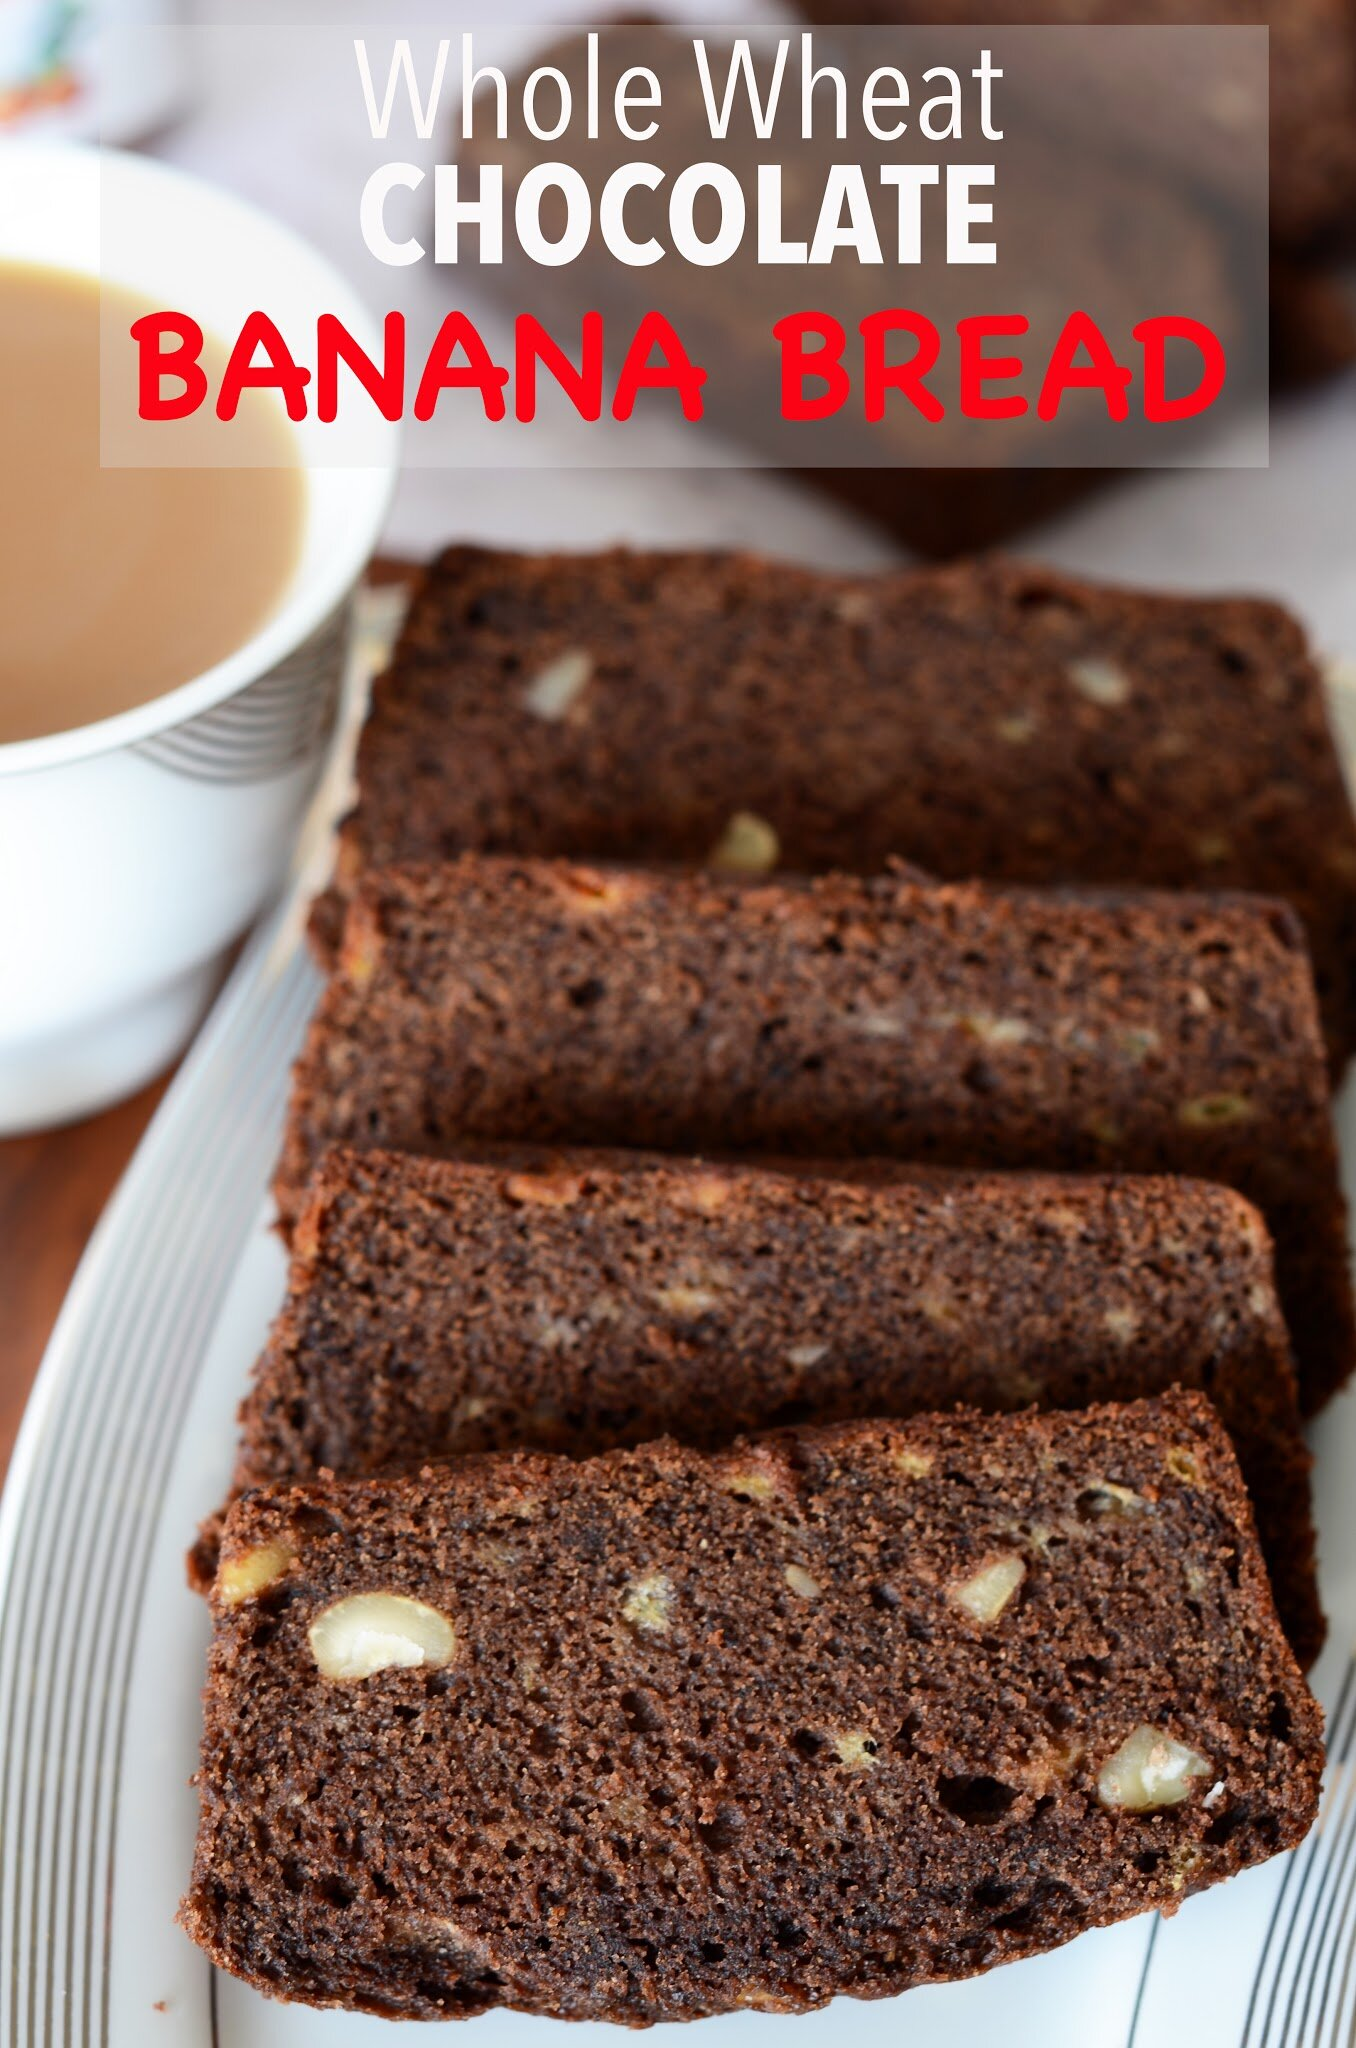 Eggless Banana Bread Vegan Recipe with whole wheat flour